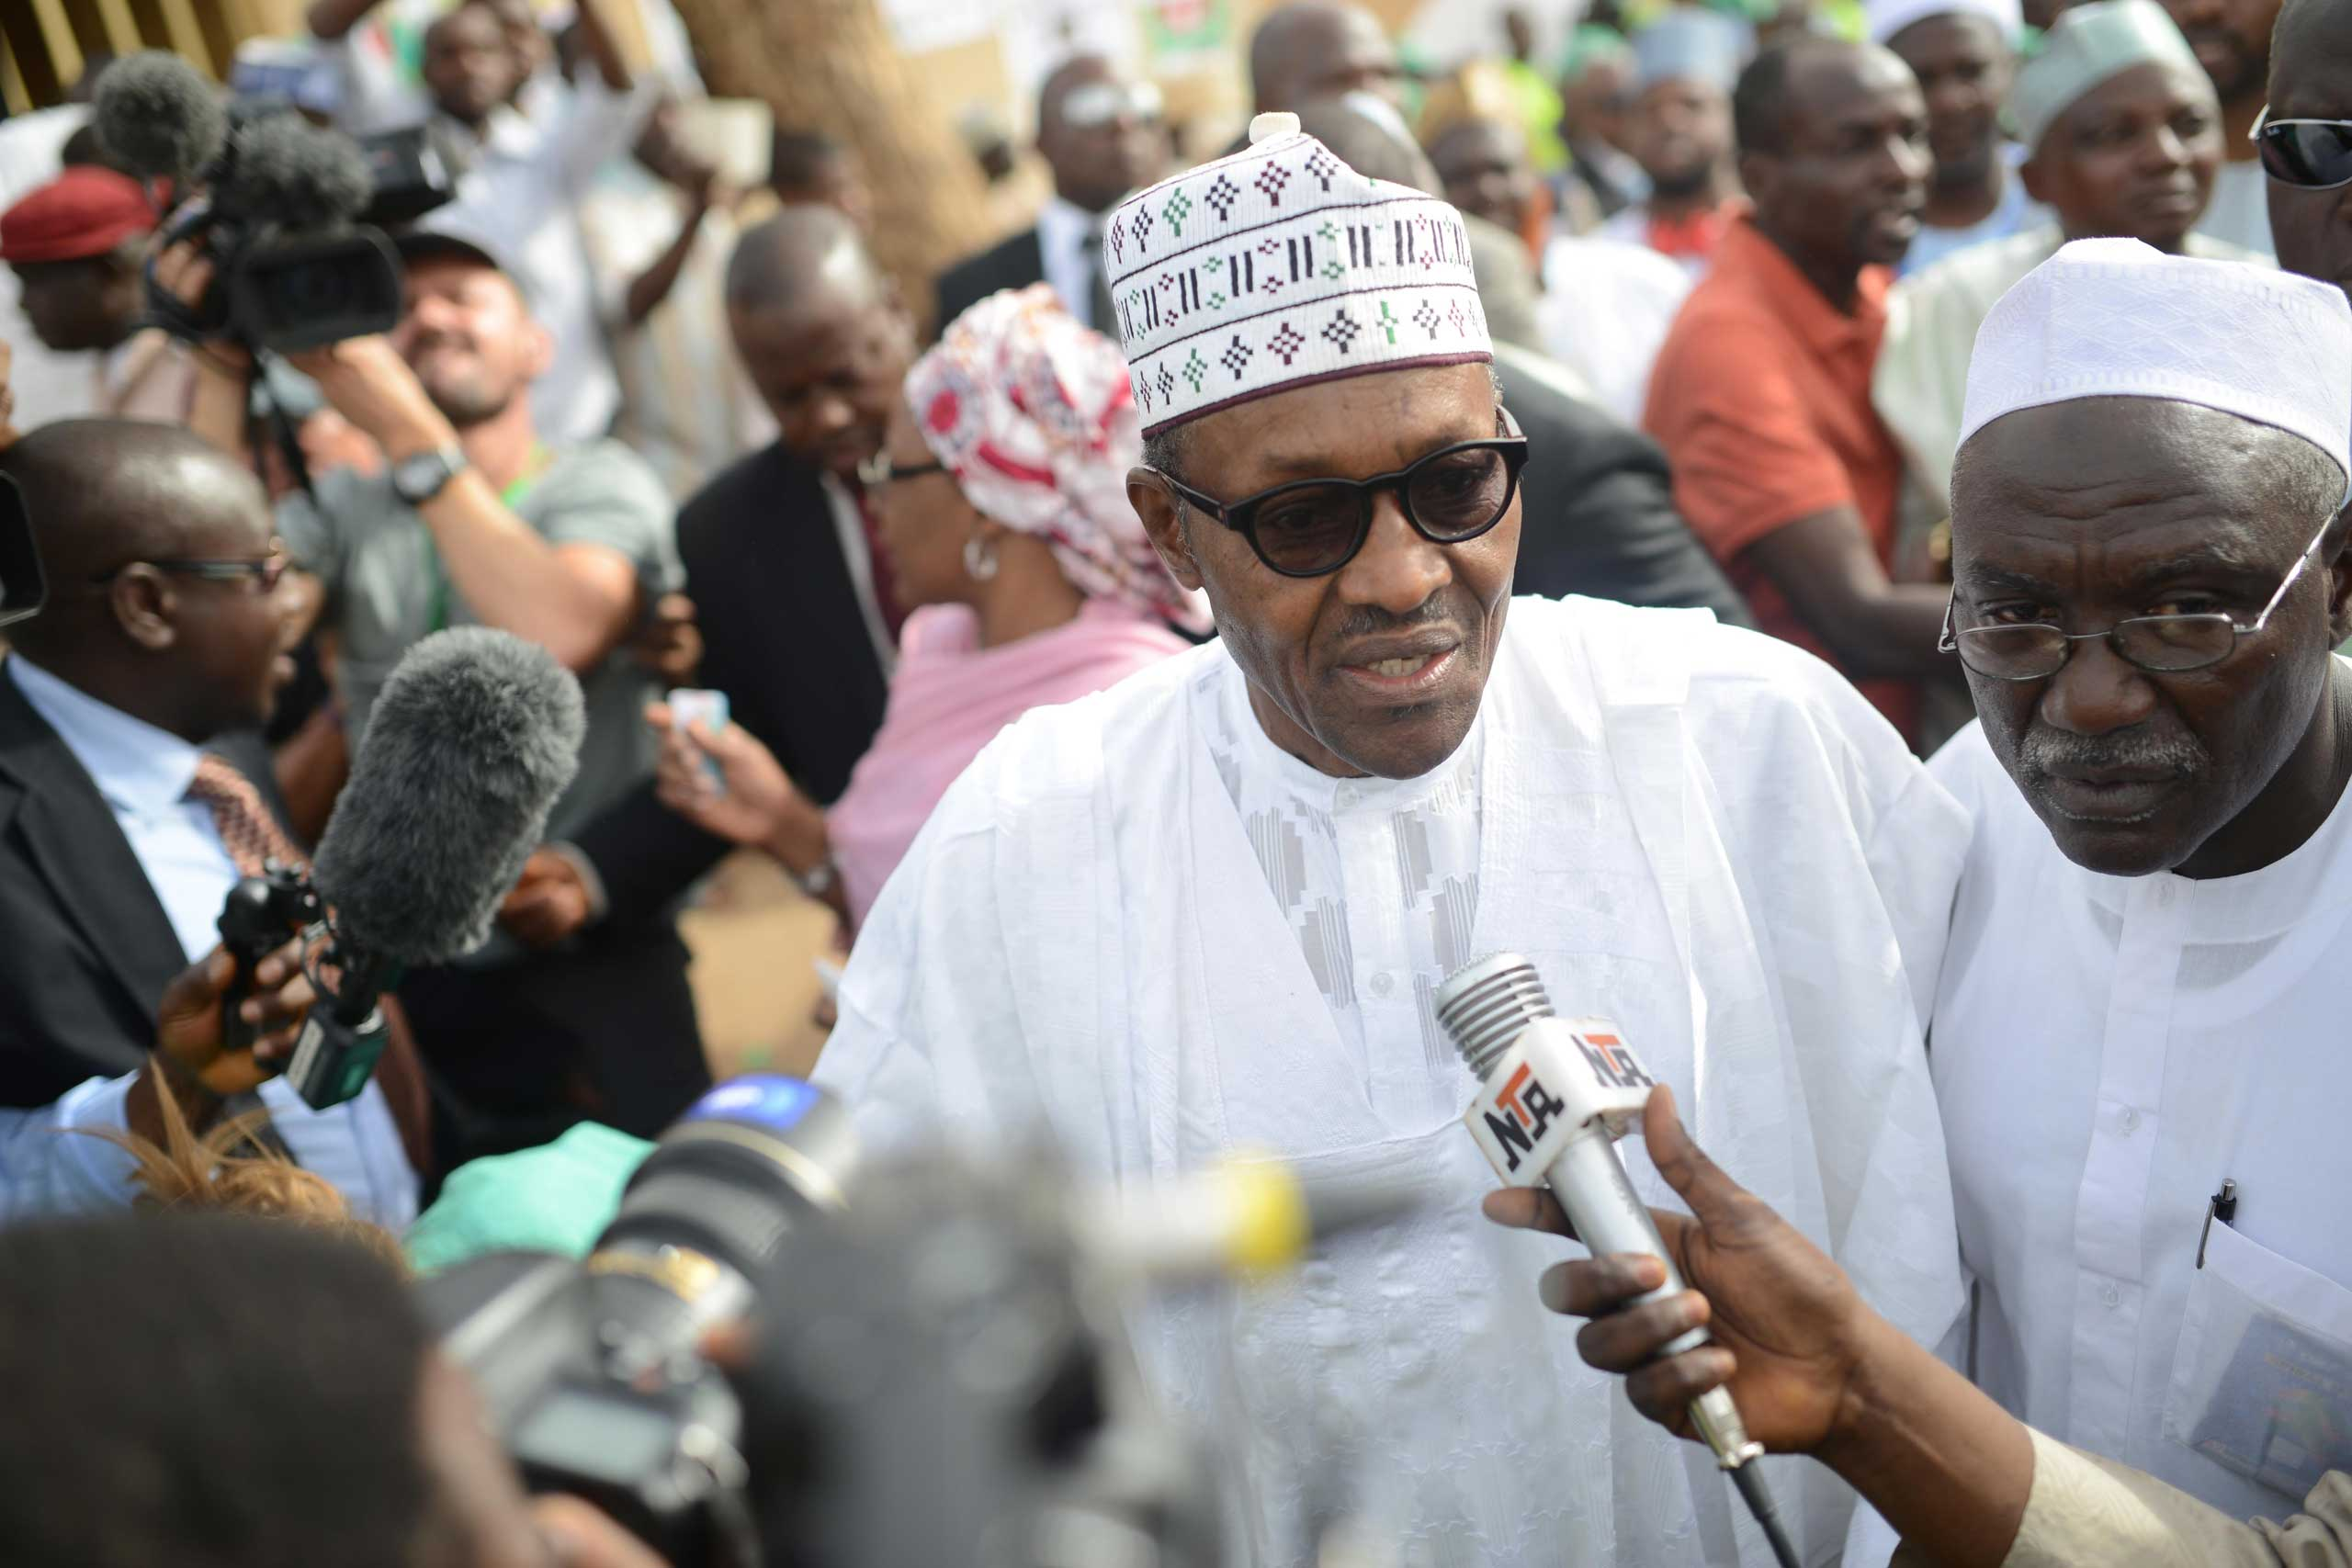 Mohammadu Buhari, the presidential candidate of the main opposition party All Progressives Congress, speaks to the press as he arrives for registration at Gidan Niyam Sakin Yara polling station in Daura district of Katsina, Nigeria, on March 28, 2015